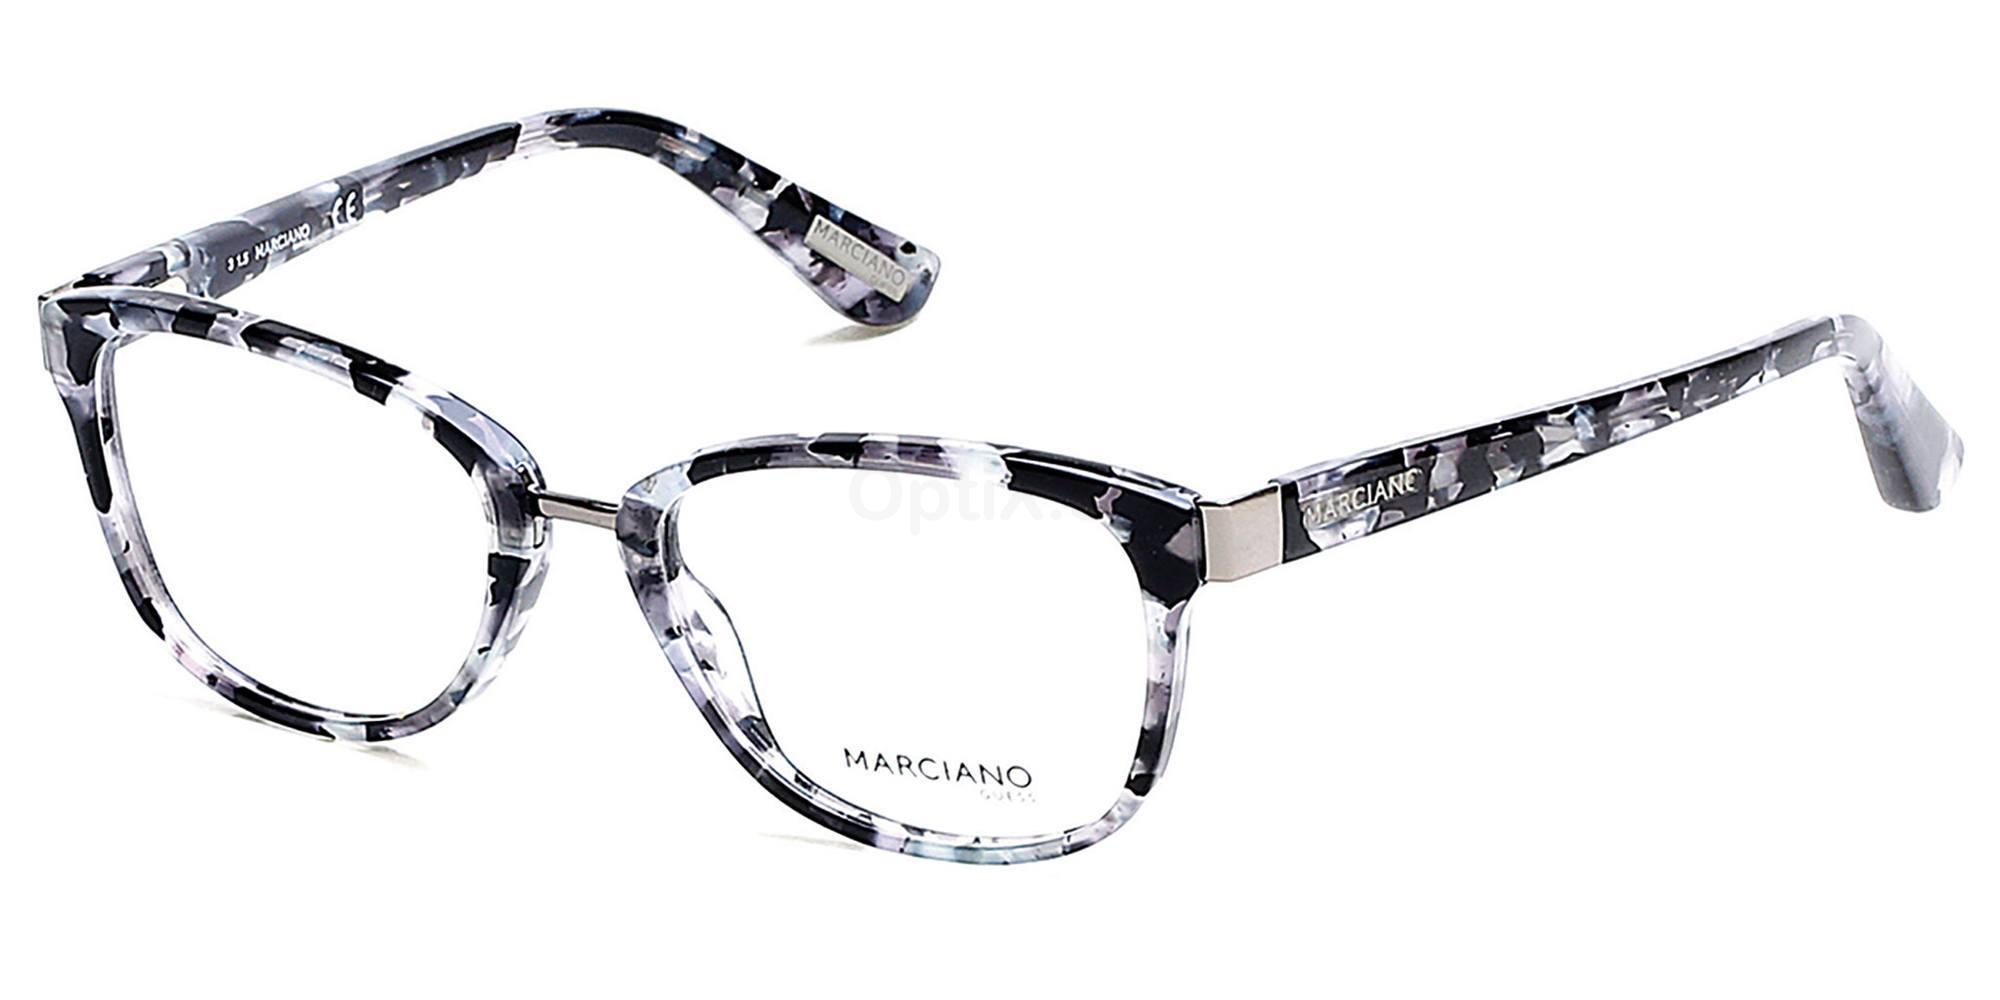 005 GM0286 , Guess by Marciano